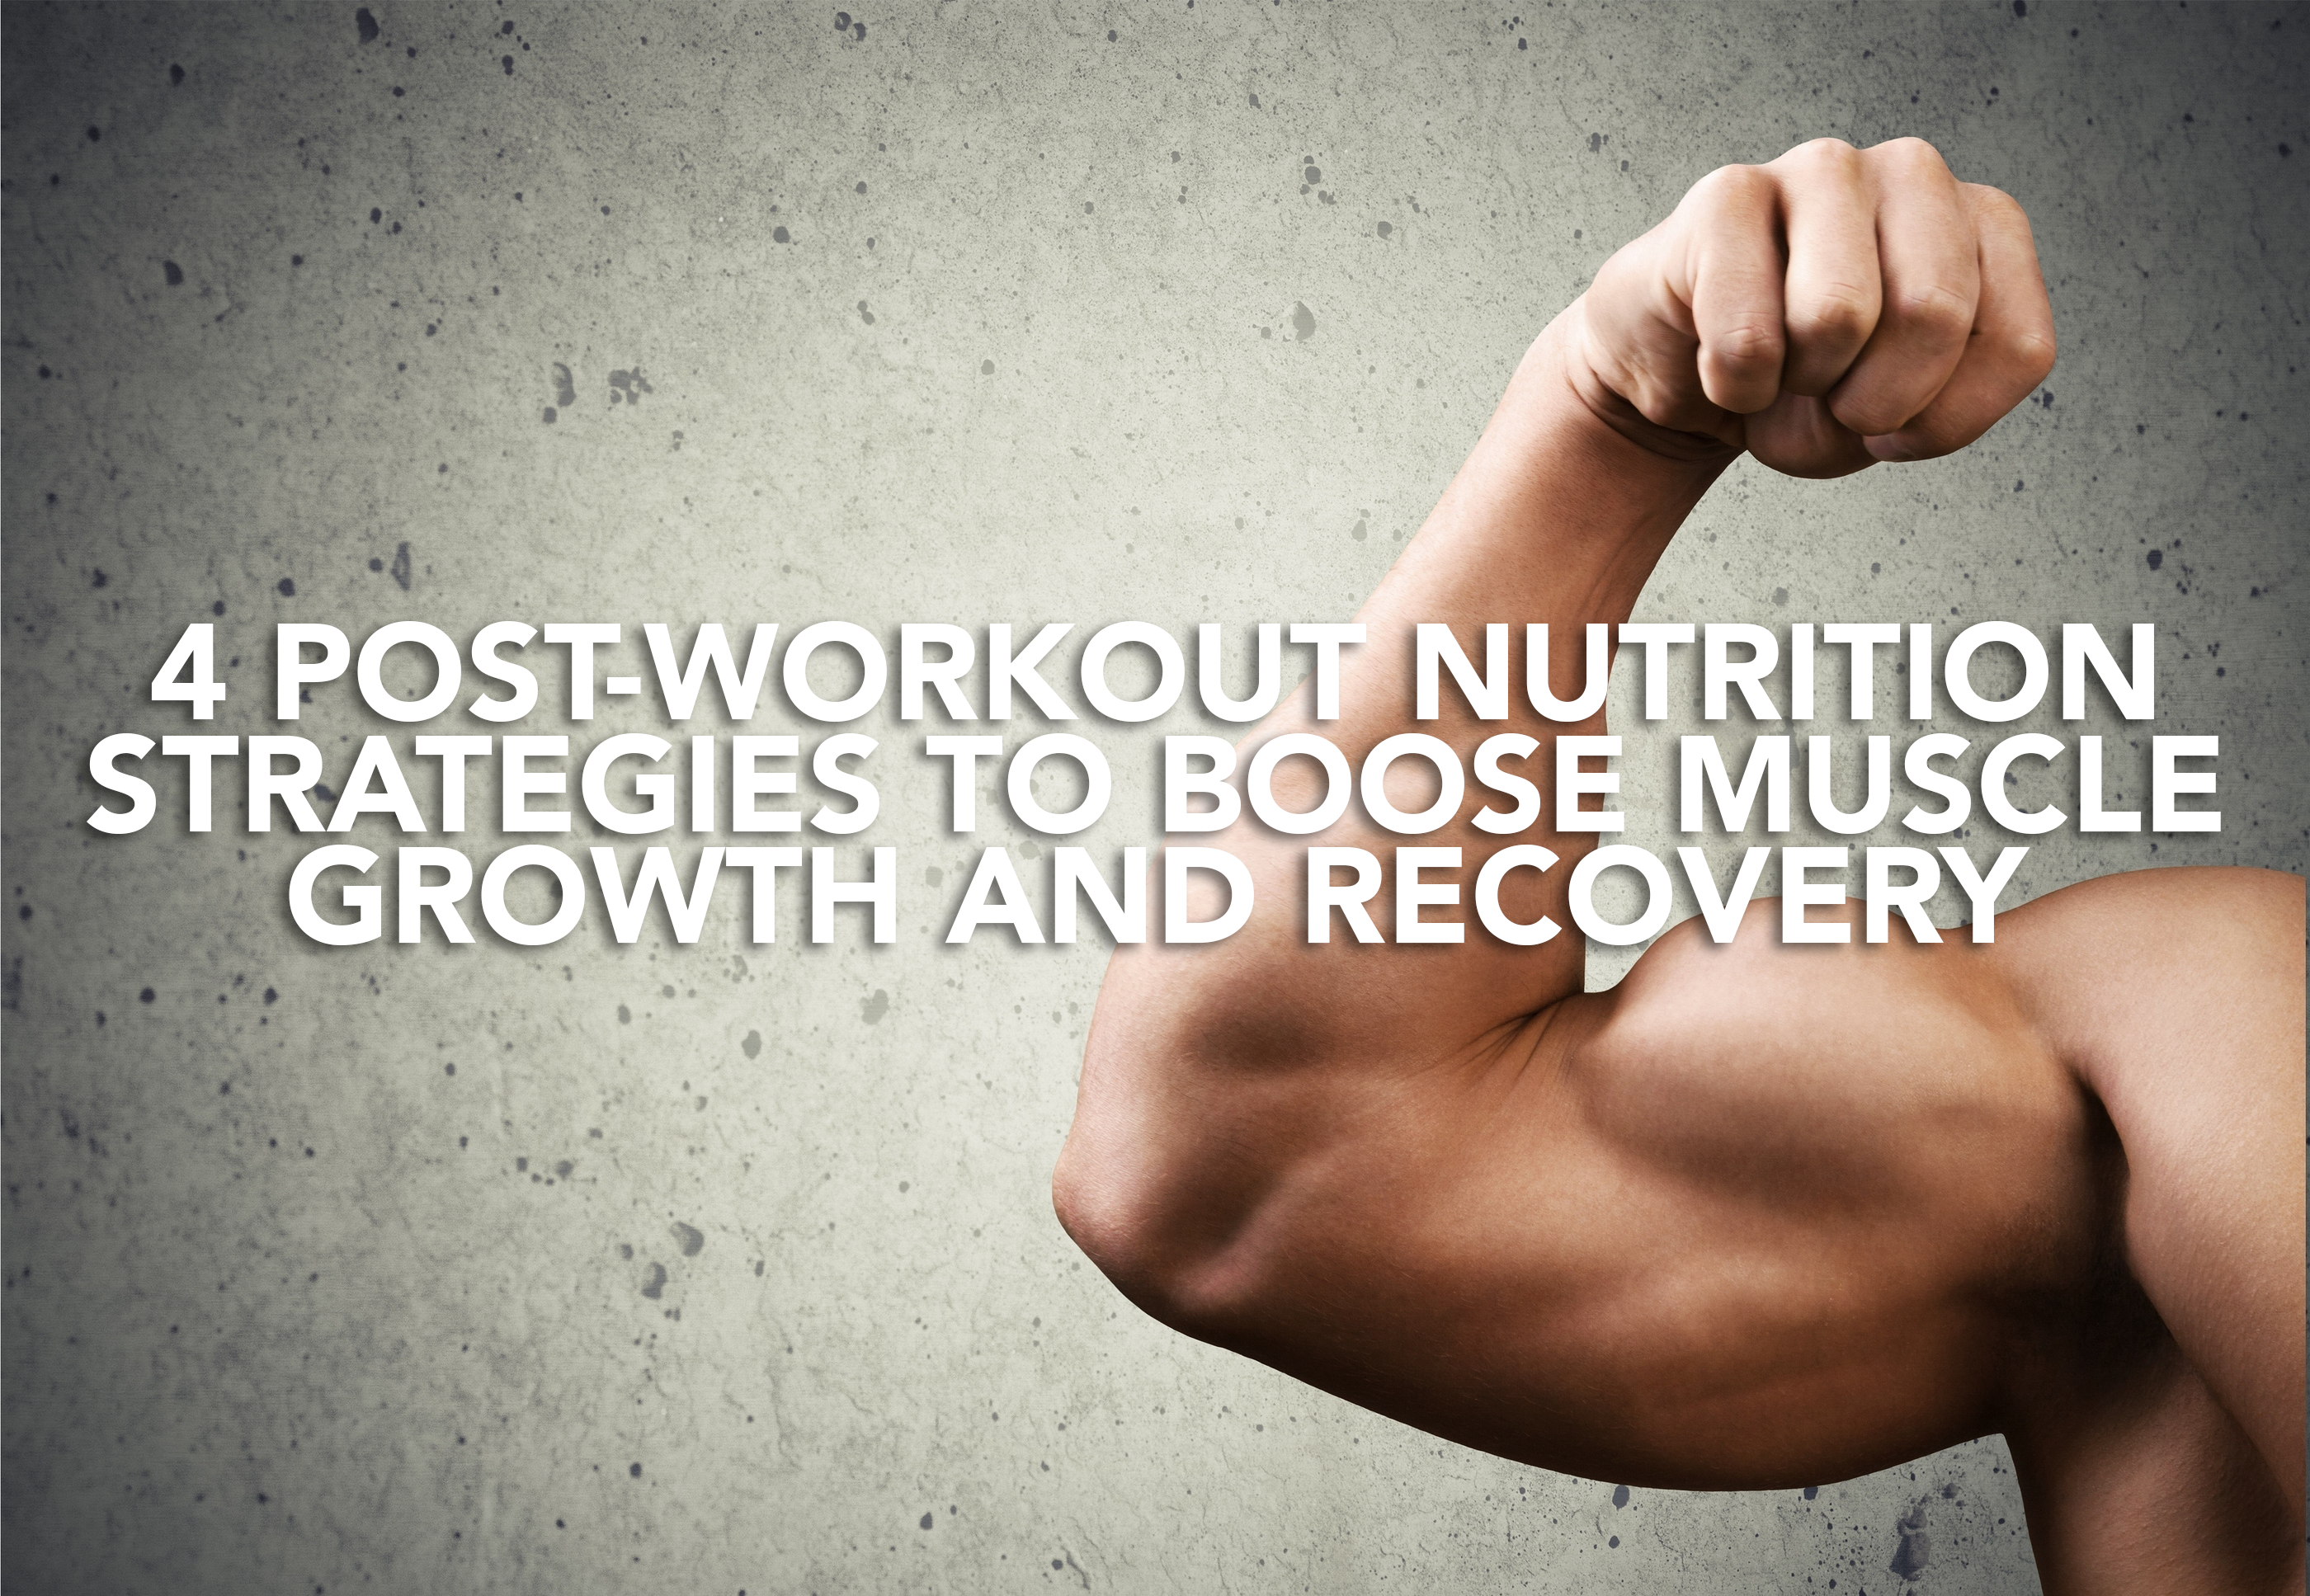 4 Post-Workout Nutrition Strategies to Boost Muscle Growth and Recovery